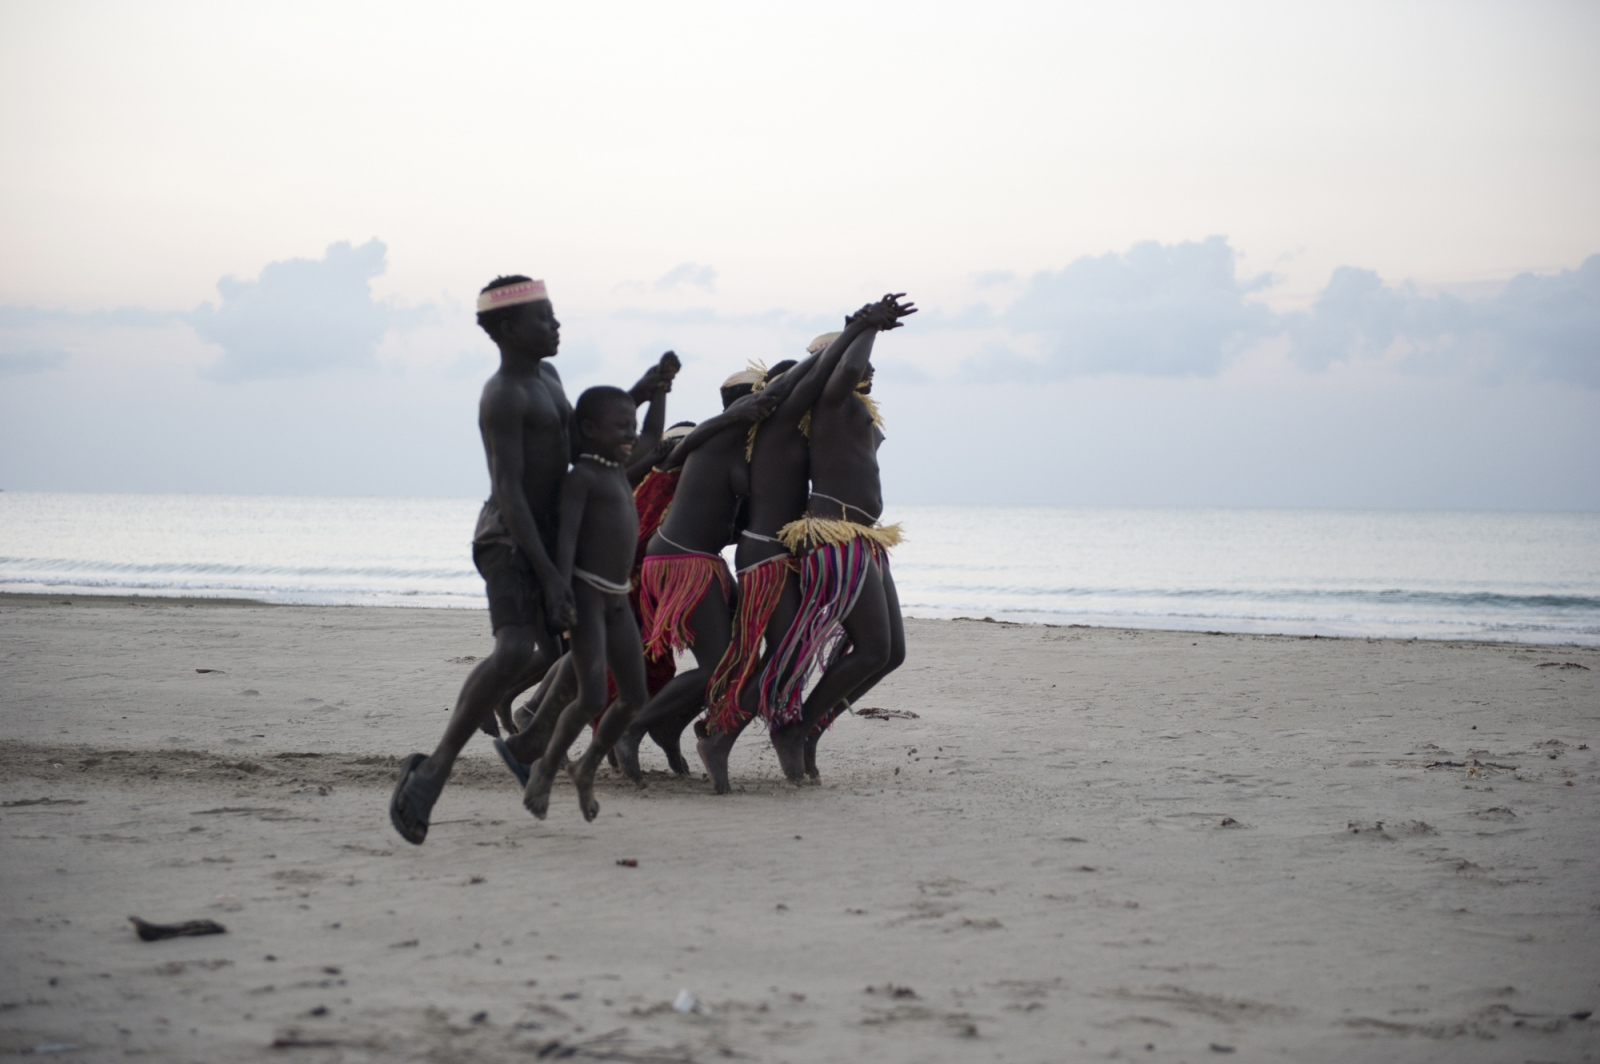 Art and Documentary Photography - Loading jarawa_beilvert_dancing_on_the_beach.jpg